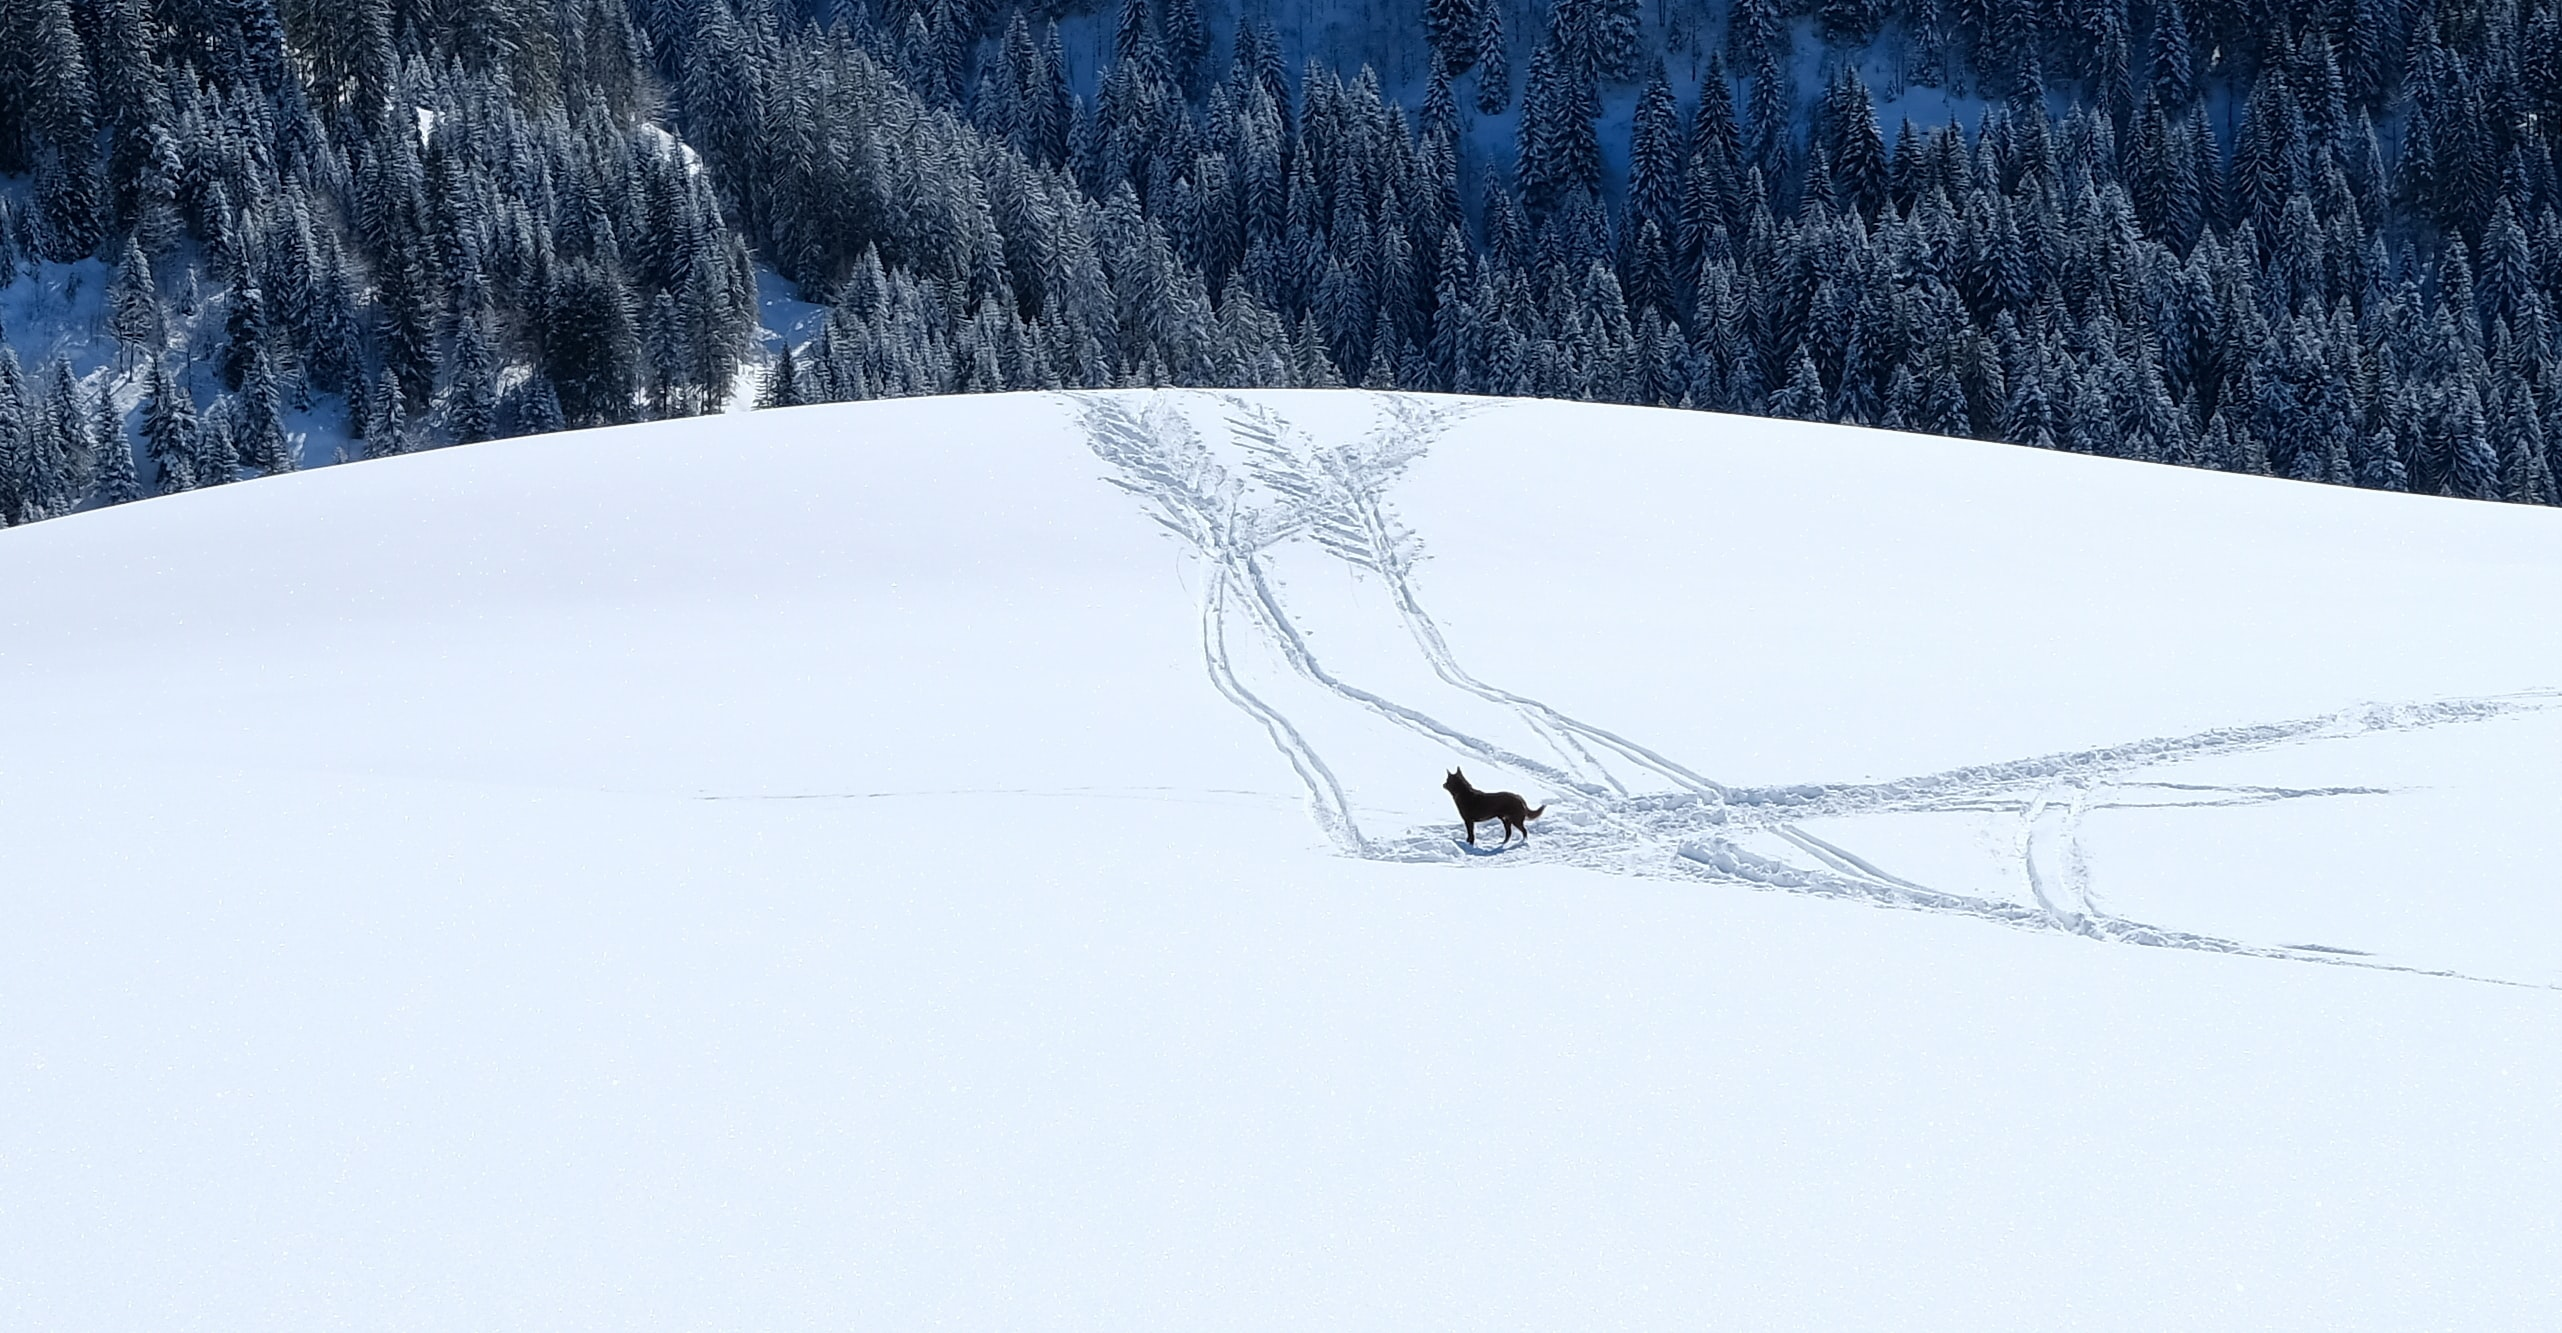 brown dog standing on snowfield